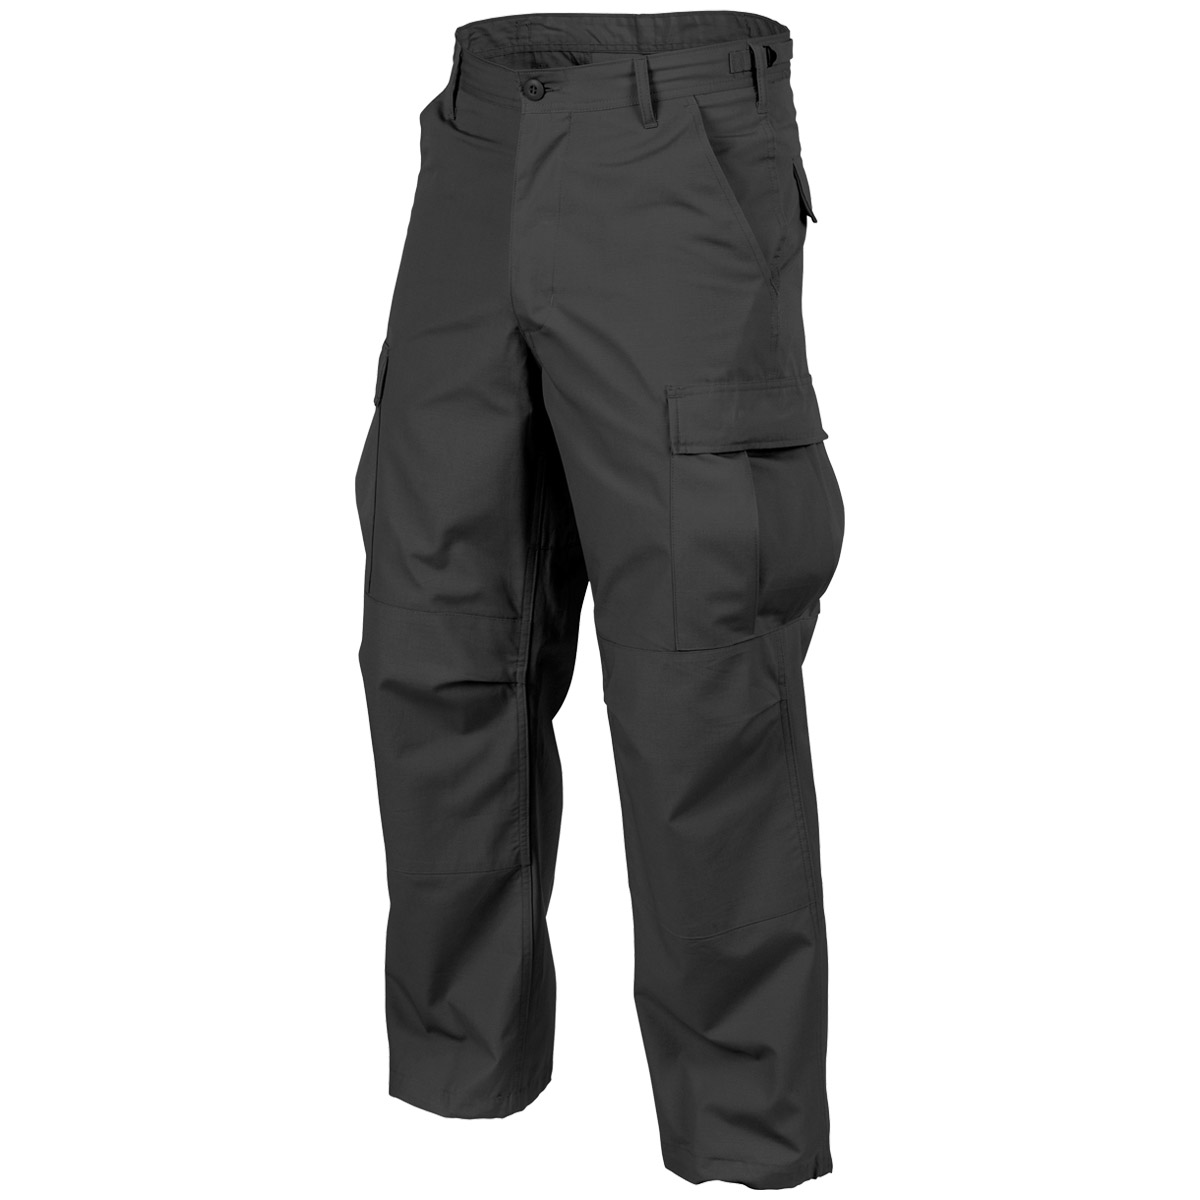 Combat trousers: 14 items. Combat Trousers £; Cotton Tactical Pants Was £ Now £